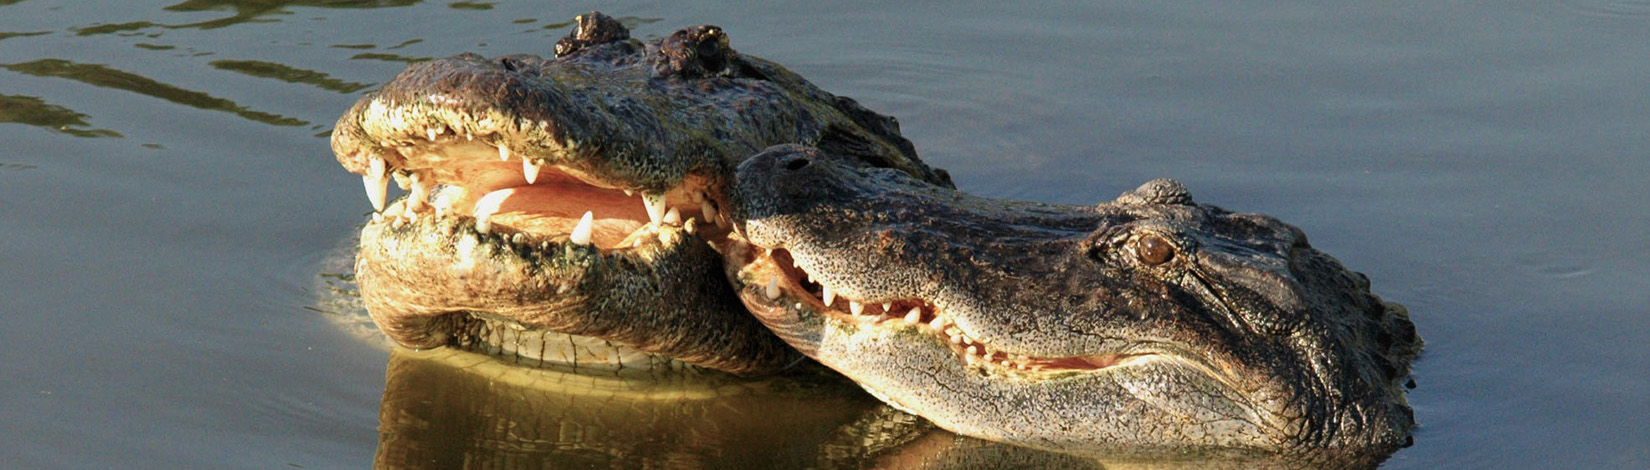 Photo of two alligator heads with noses touching